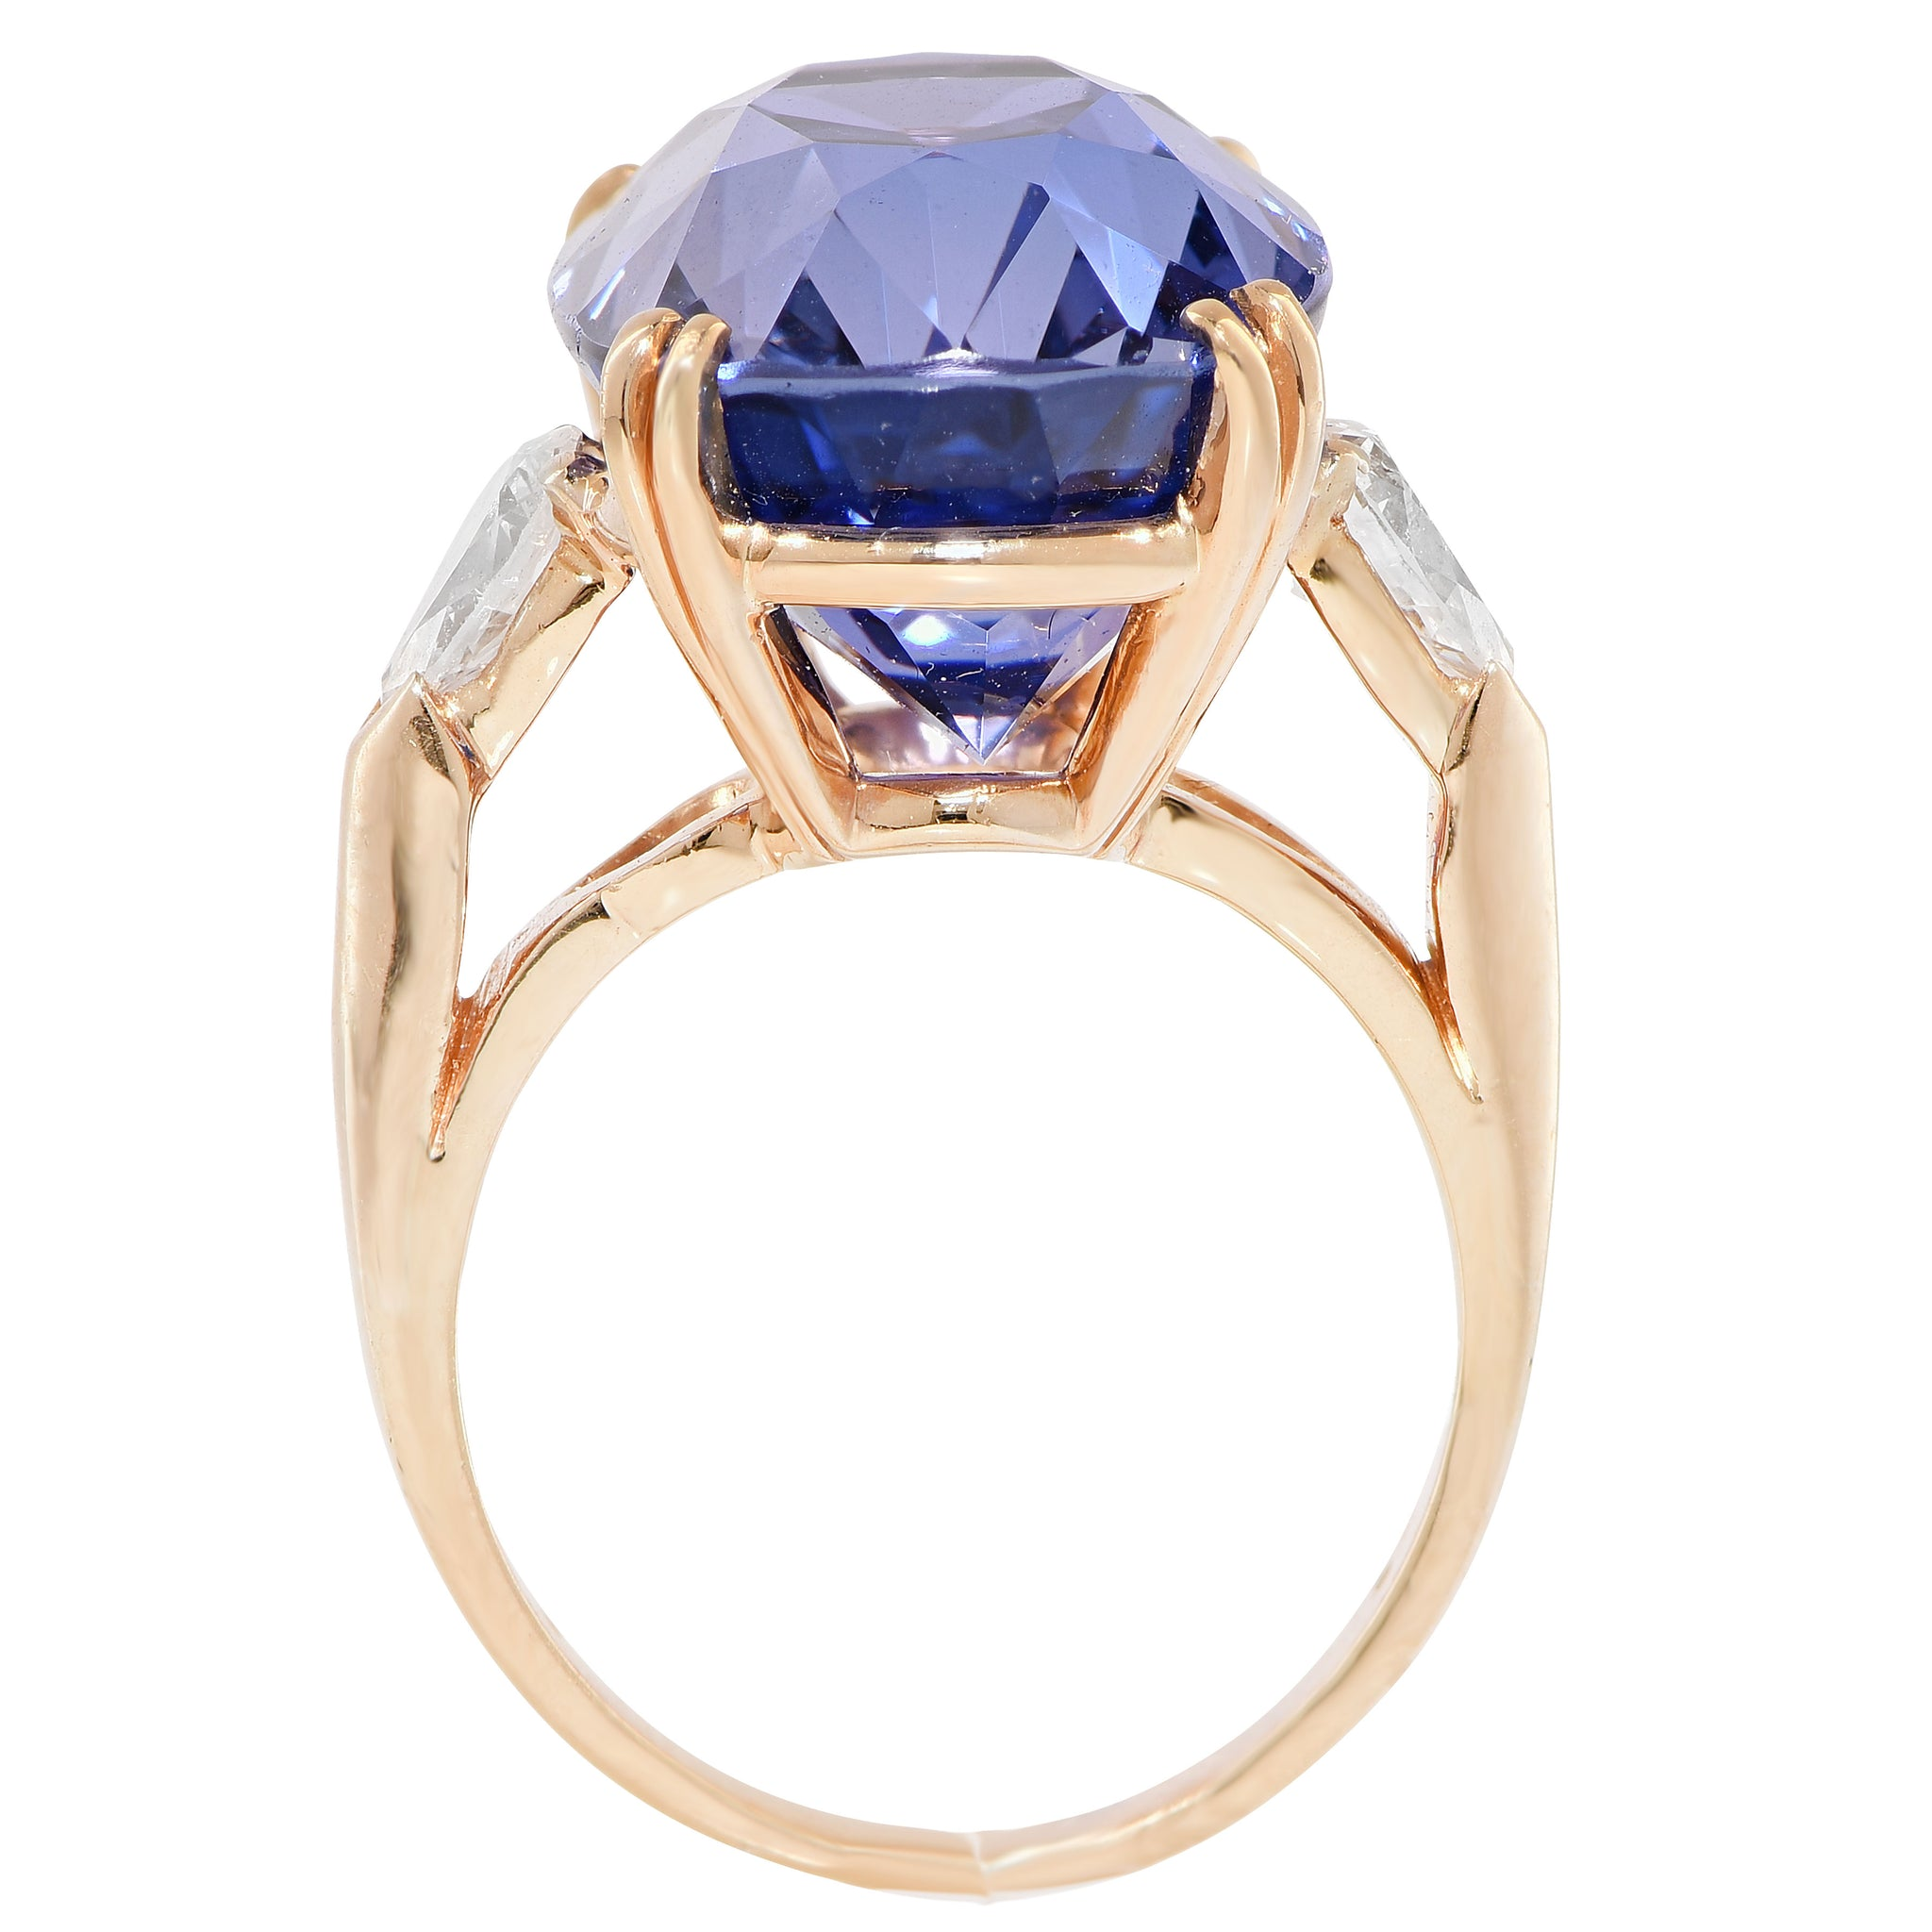 sapp mod emerson rose conflict engagement champagne sapphire with products colored in diamond halo peach diamonds ps gold rings kristin cultured free ring